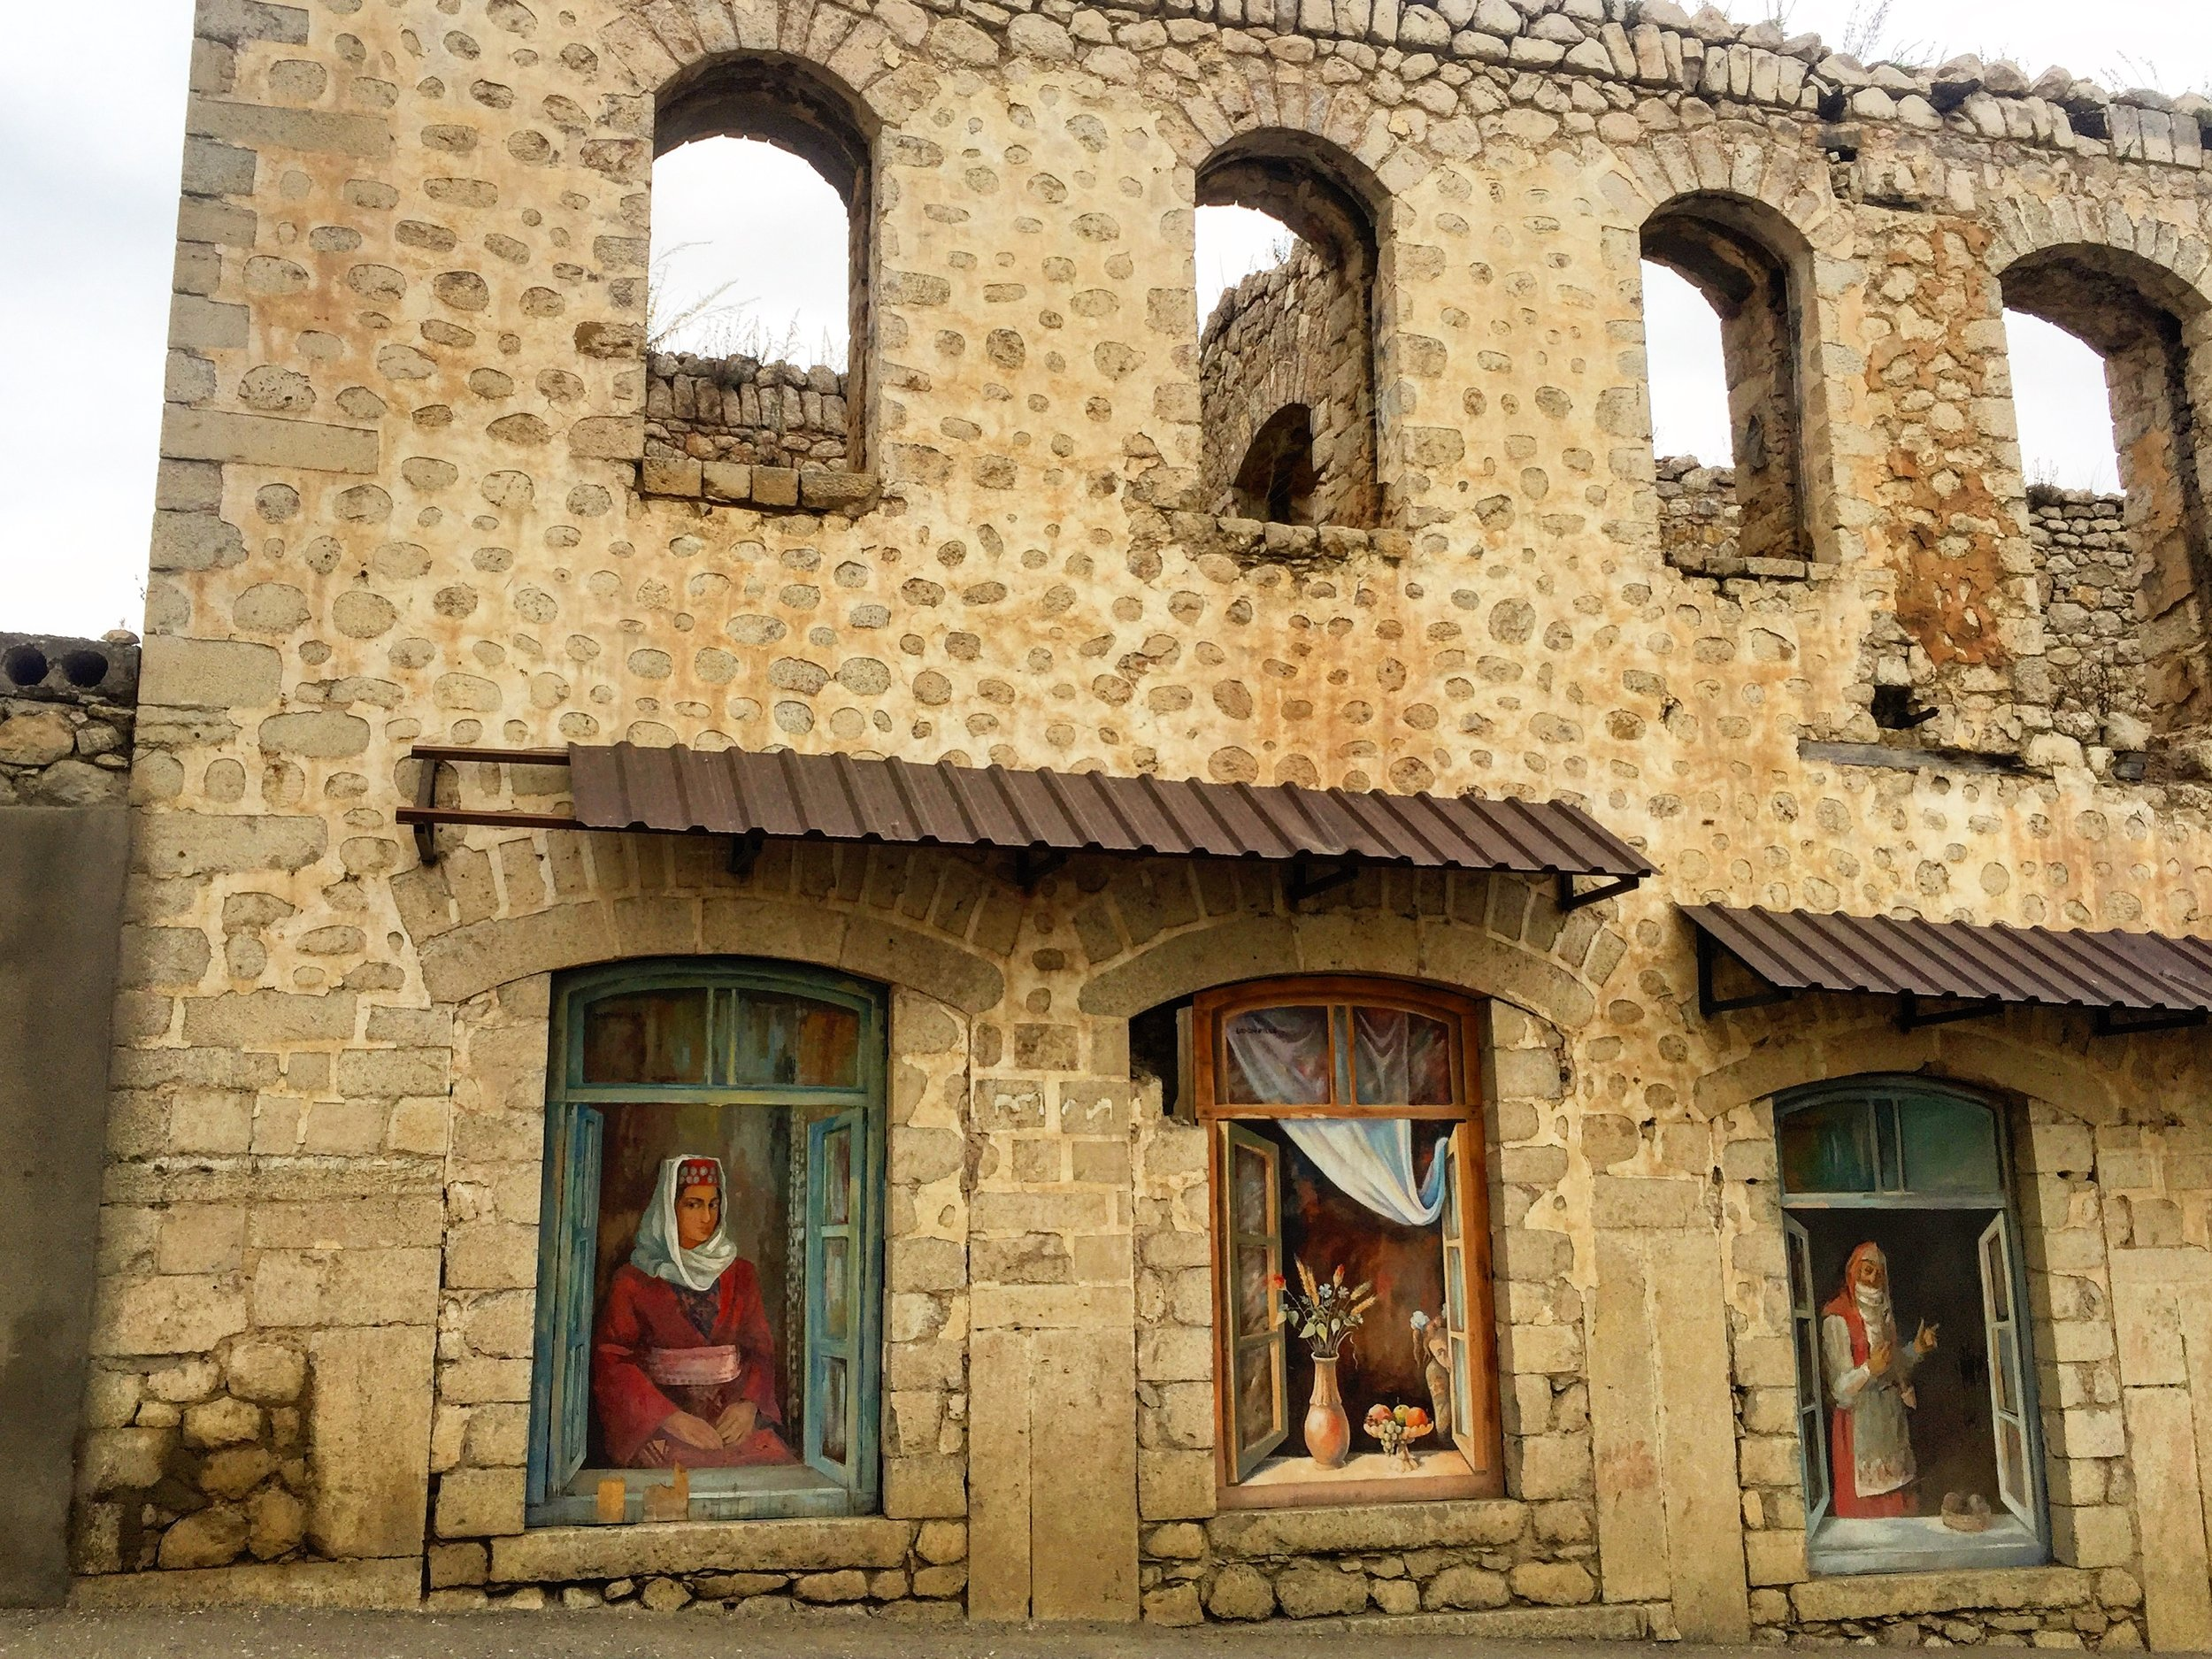 Building damaged in the war for independence holds murals of traditional life while awaiting restoration